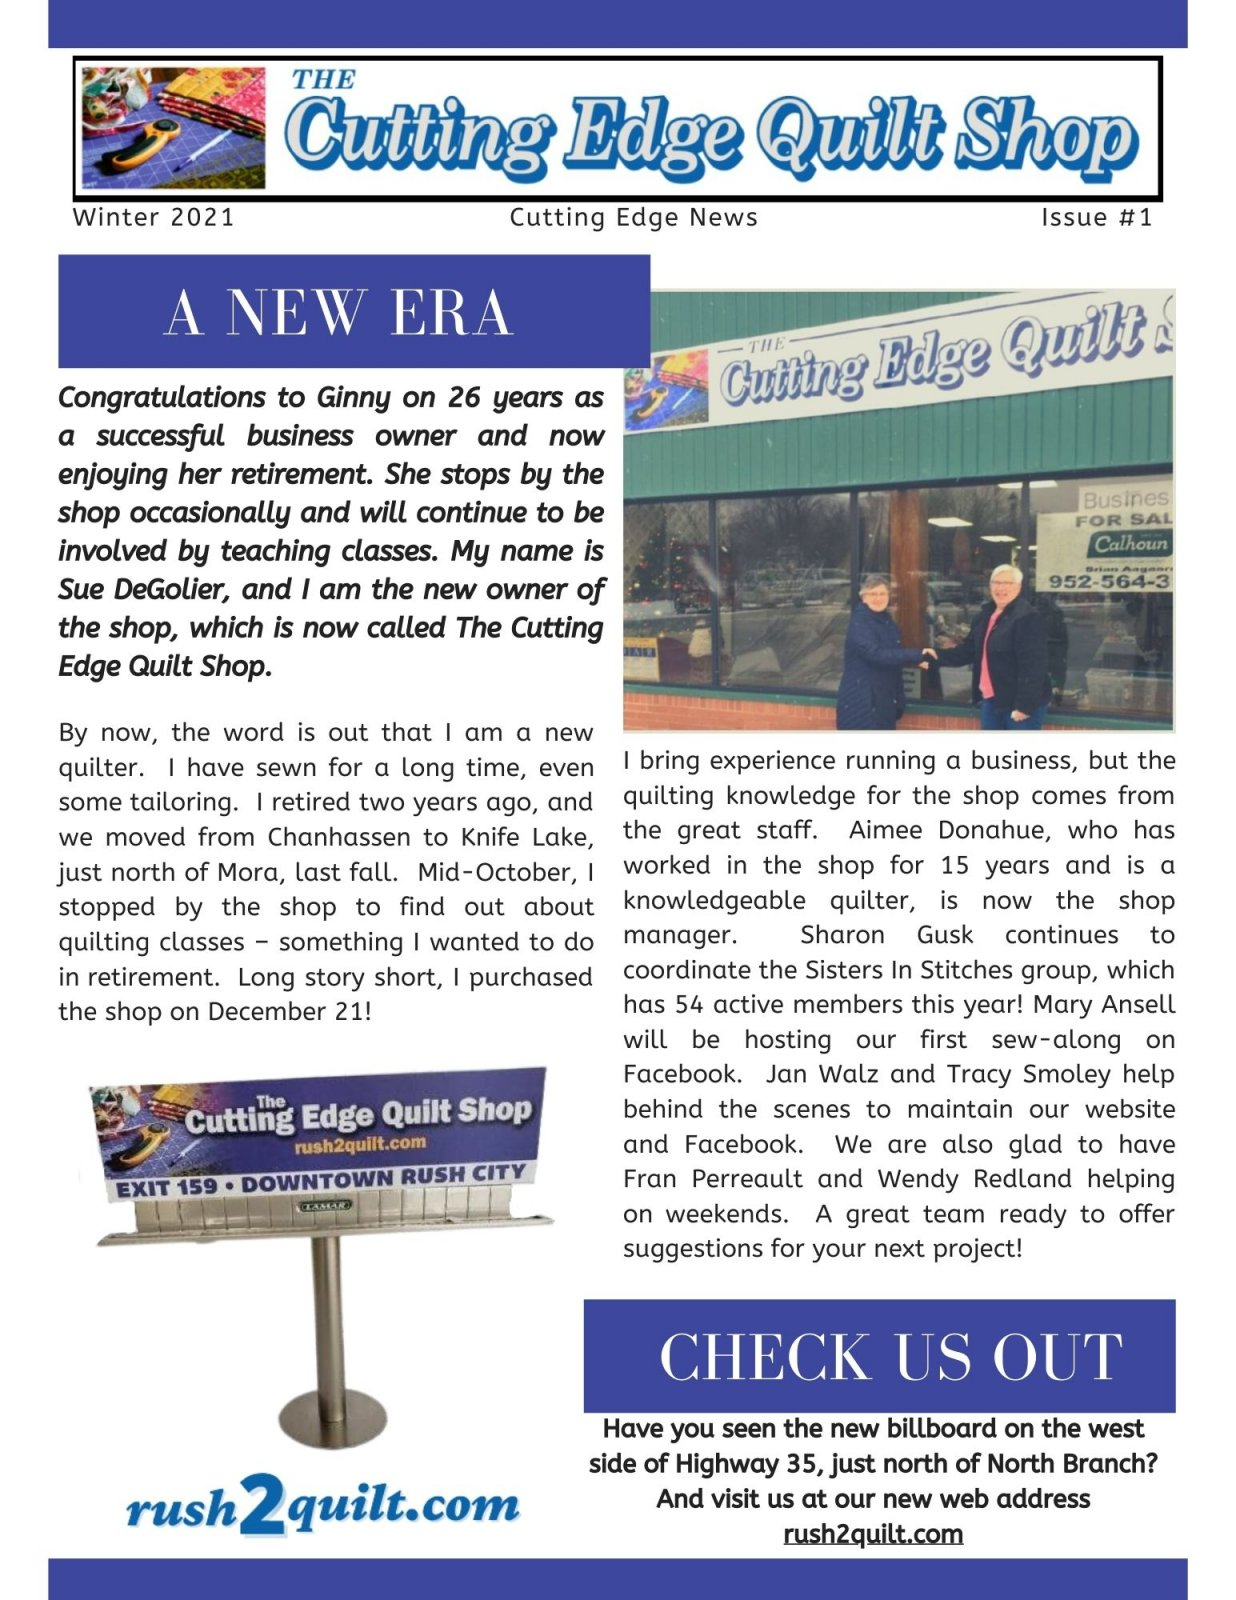 Winter 2021 - Cutting Edge News - Issue#1 - Page 1